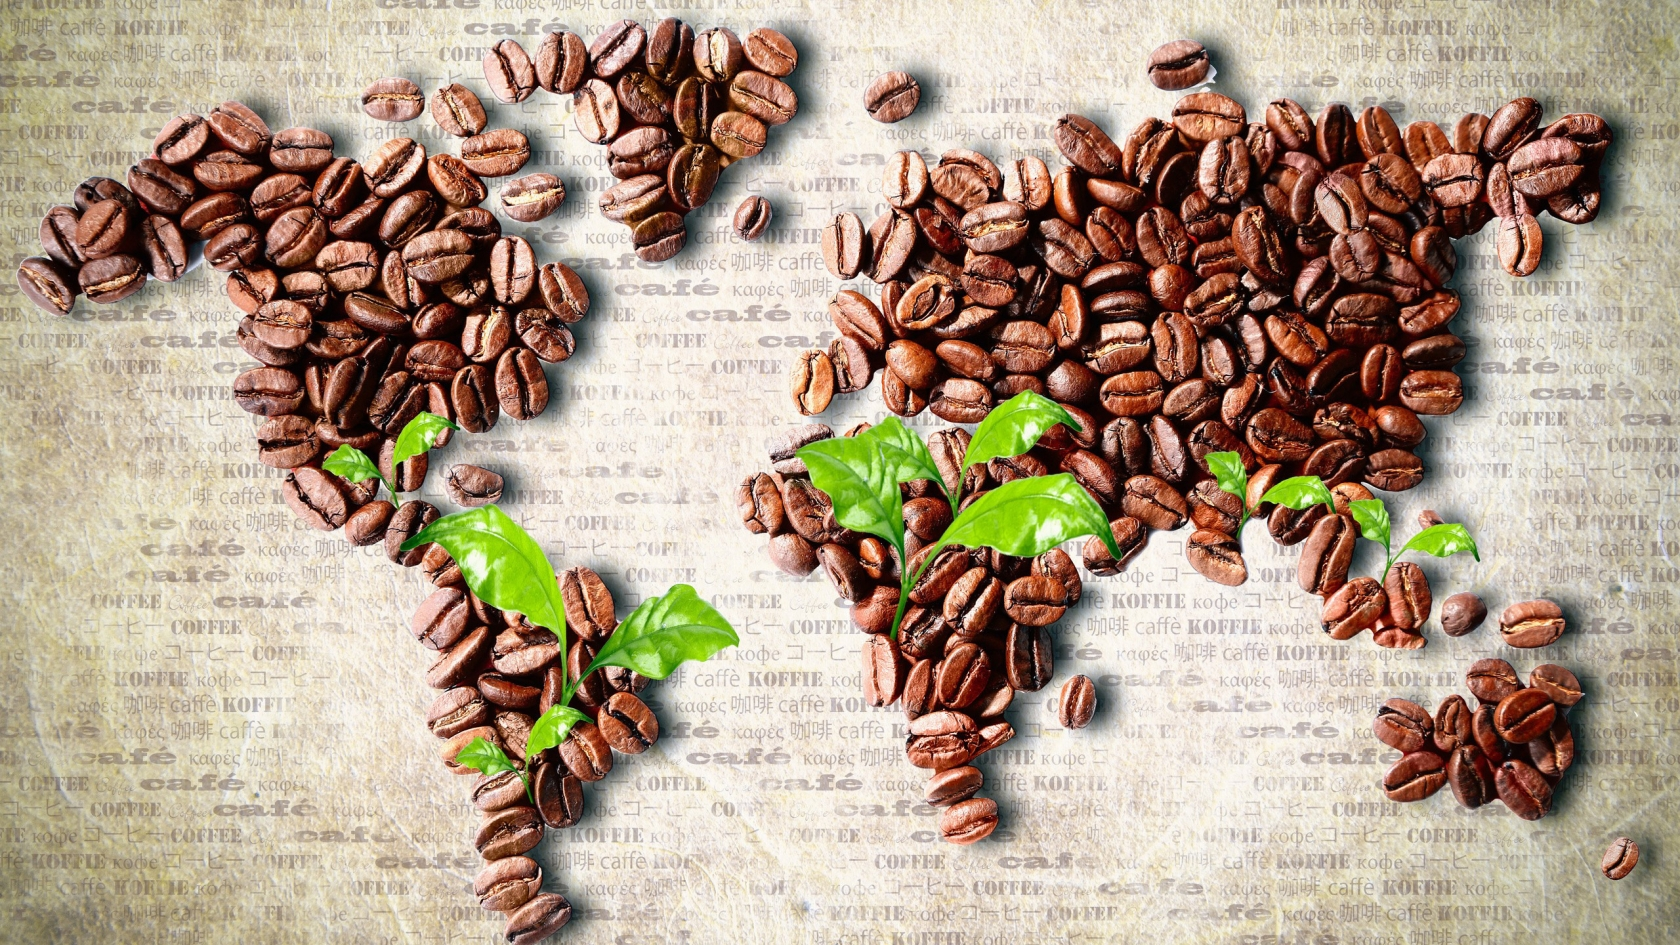 Coffee Beans World Map for 1680 x 945 HDTV resolution